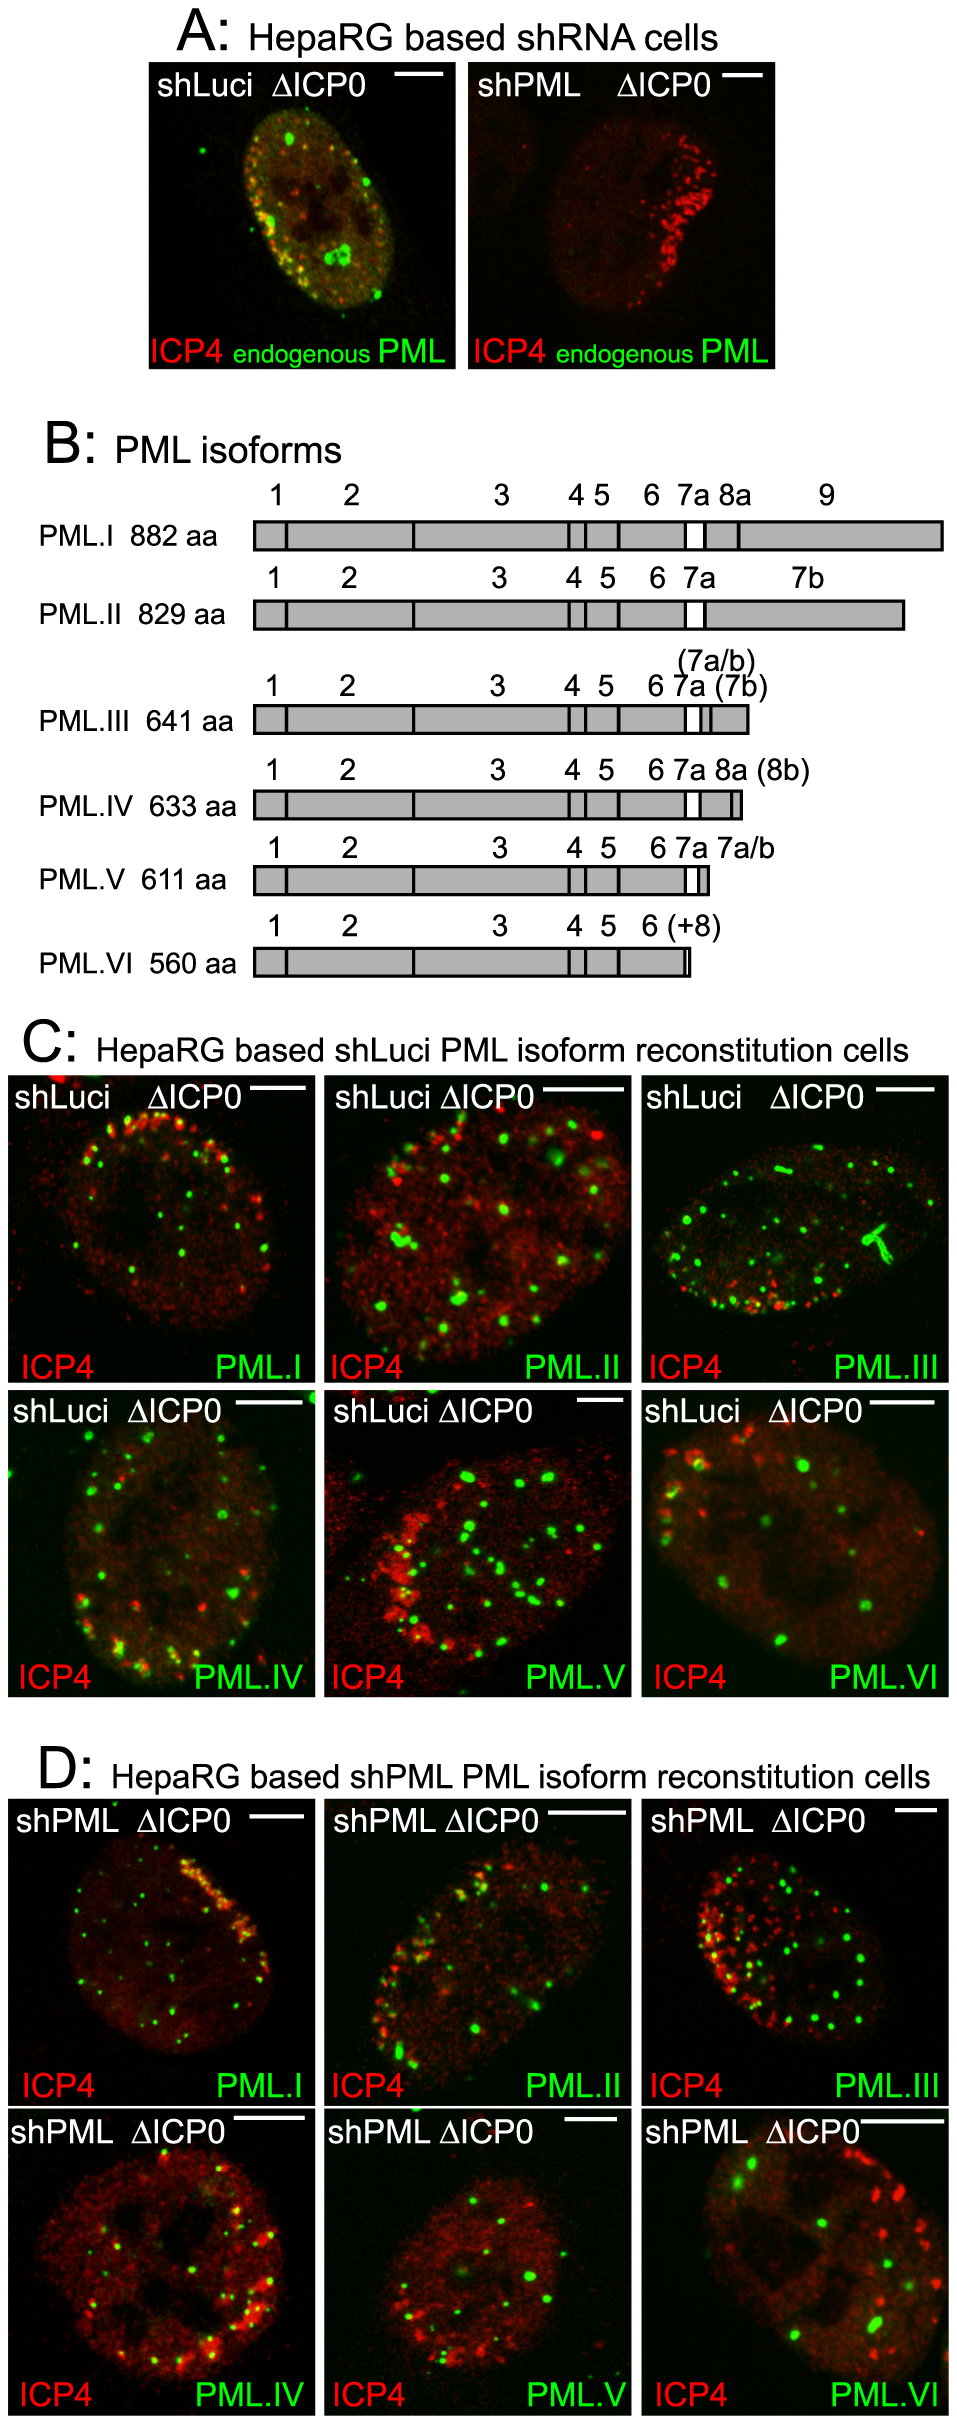 The major nuclear isoforms of PML and their recruitment to sites associated with HSV-1 genomes.